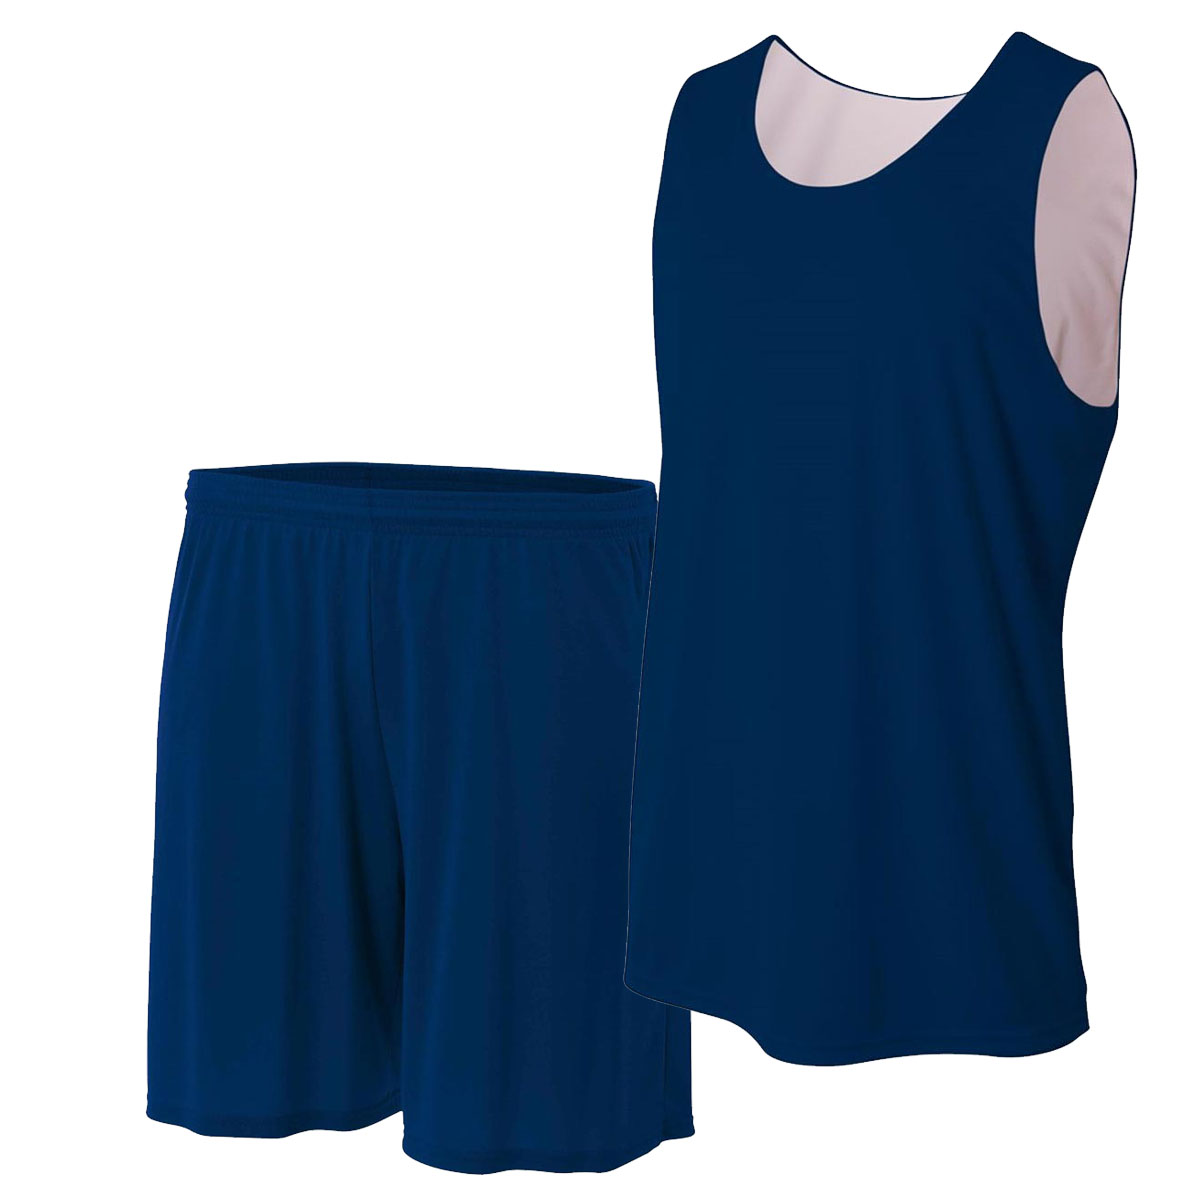 Reversible Basketball Uniforms Manufacturers in Jalandhar in Bahrain